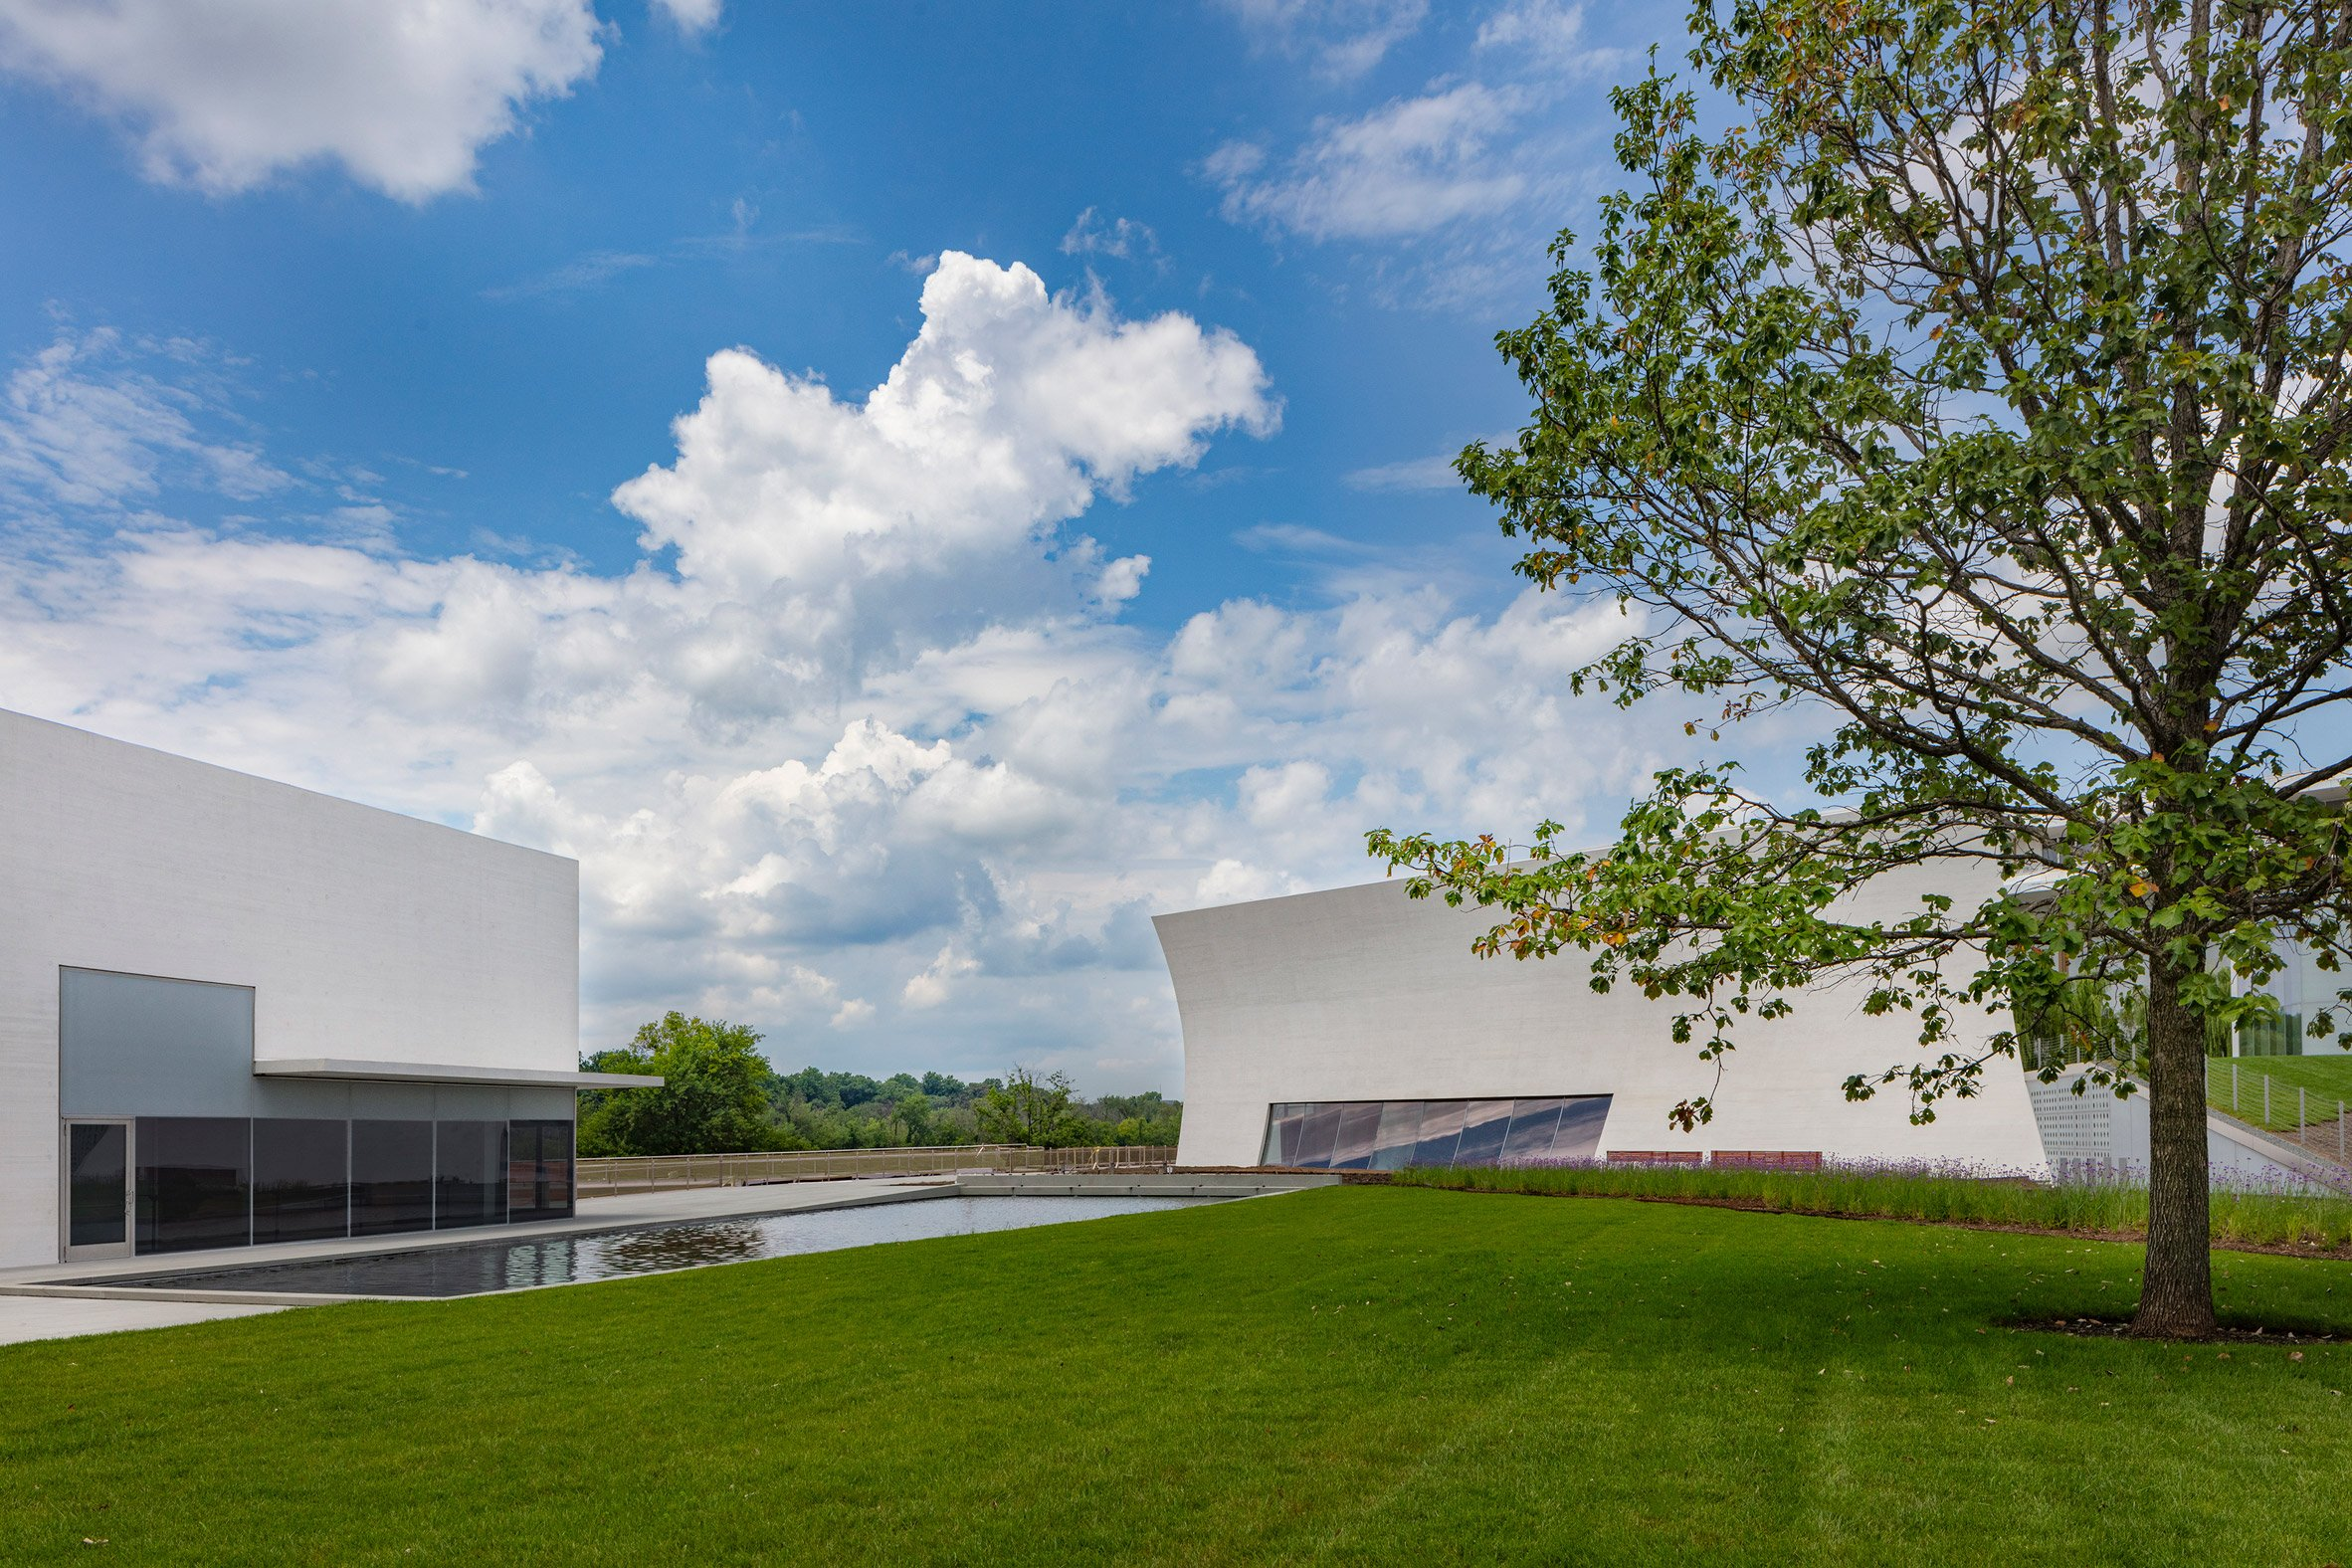 REACH at the Kennedy Center for Performing Arts by Steven Holl Architects